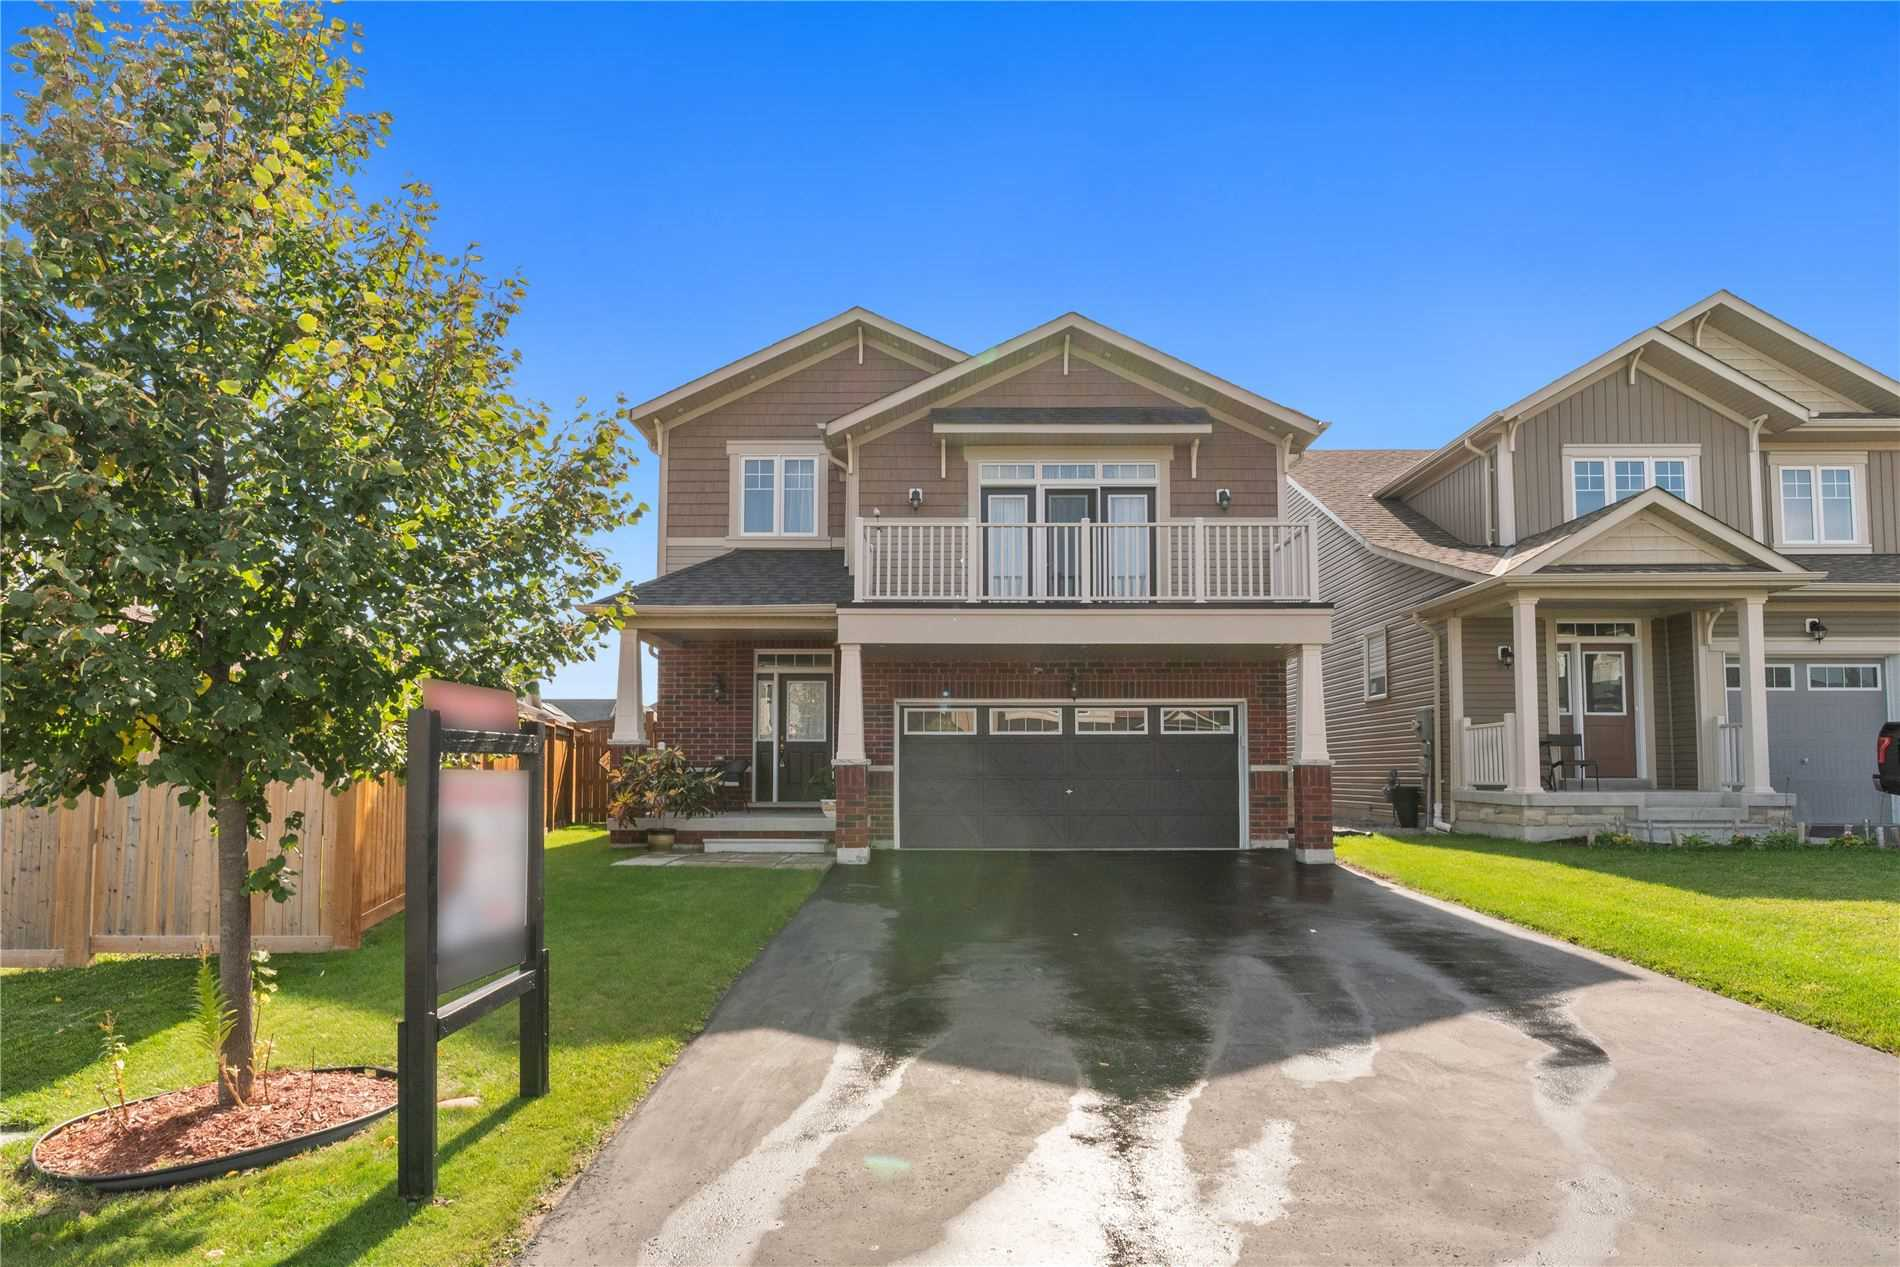 Detached house For Sale In Oshawa - 173 Sharavogue Ave, Oshawa, Ontario, Canada L1L0G4 , 3 Bedrooms Bedrooms, ,4 BathroomsBathrooms,Detached,For Sale,Sharavogue